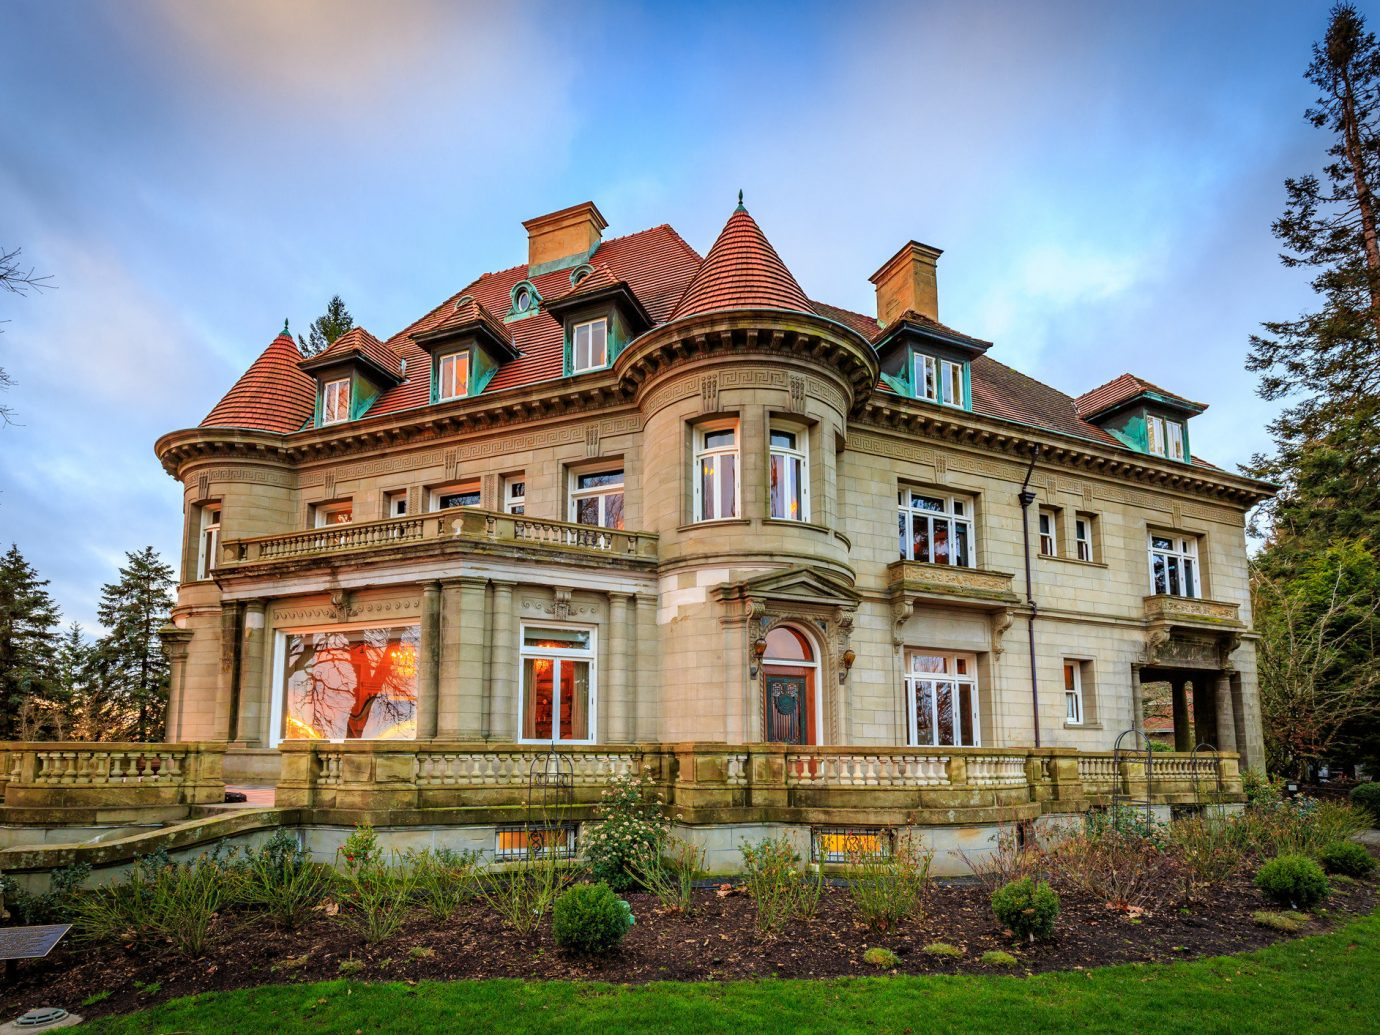 Health + Wellness Trip Ideas sky grass outdoor tree house building estate stately home château mansion home landmark manor house Architecture old historic house facade palace residential area real estate Villa stone government building